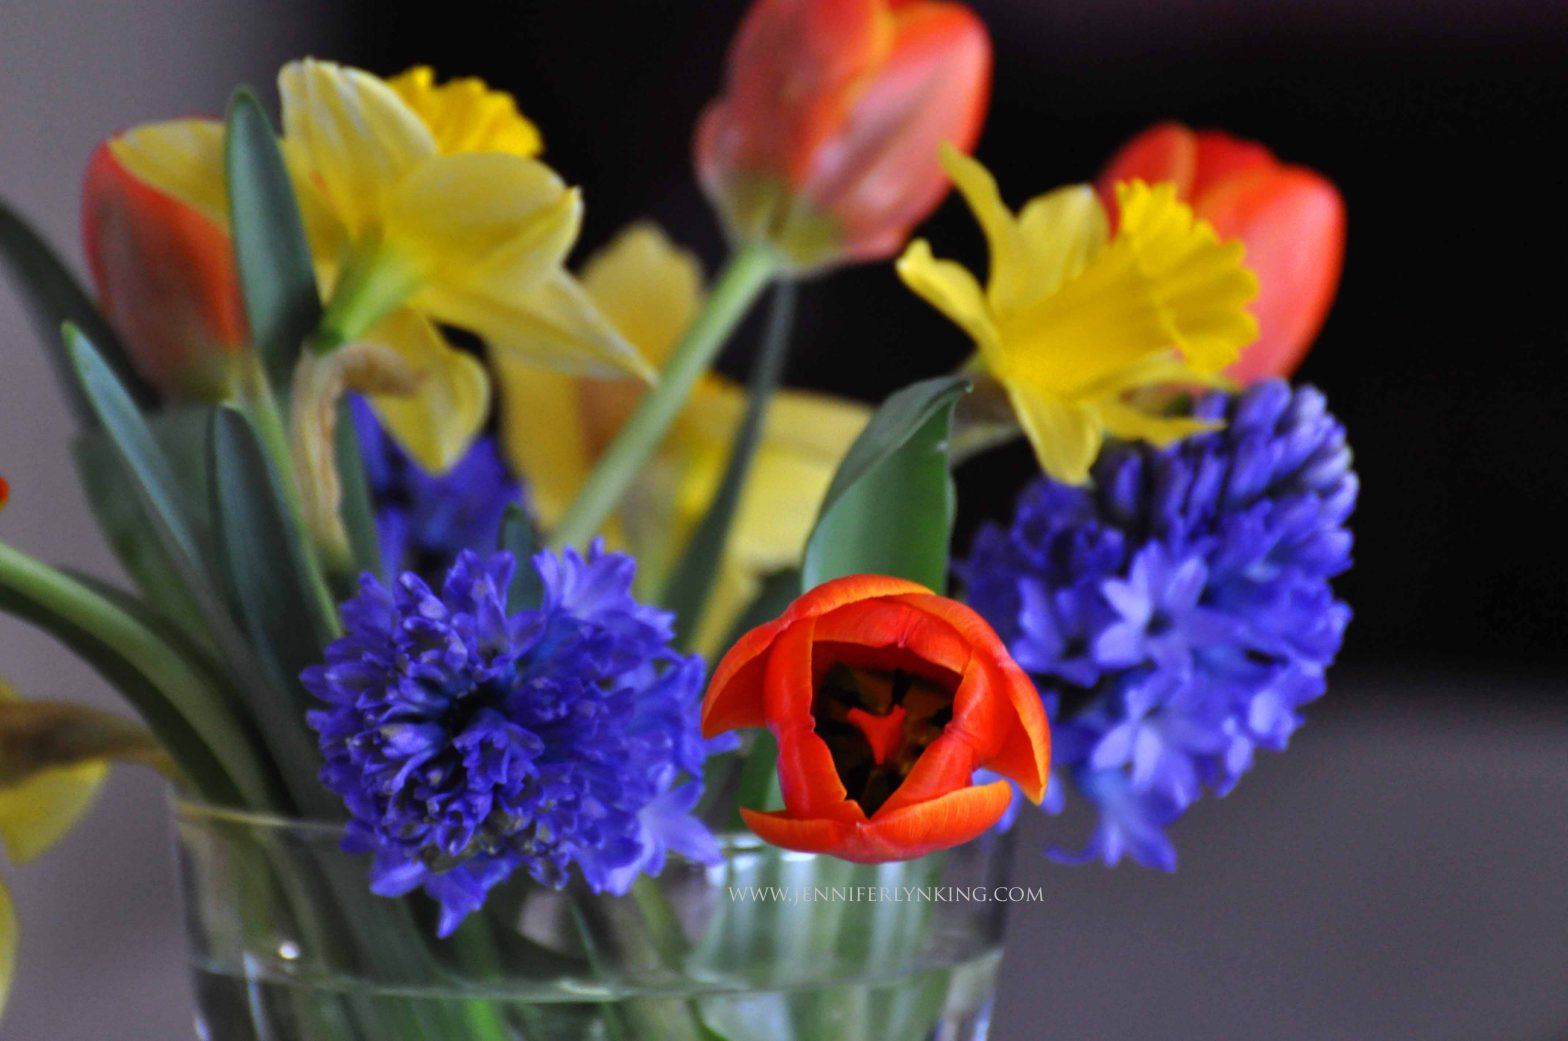 Daffodils, Hyacinths, and Tulips